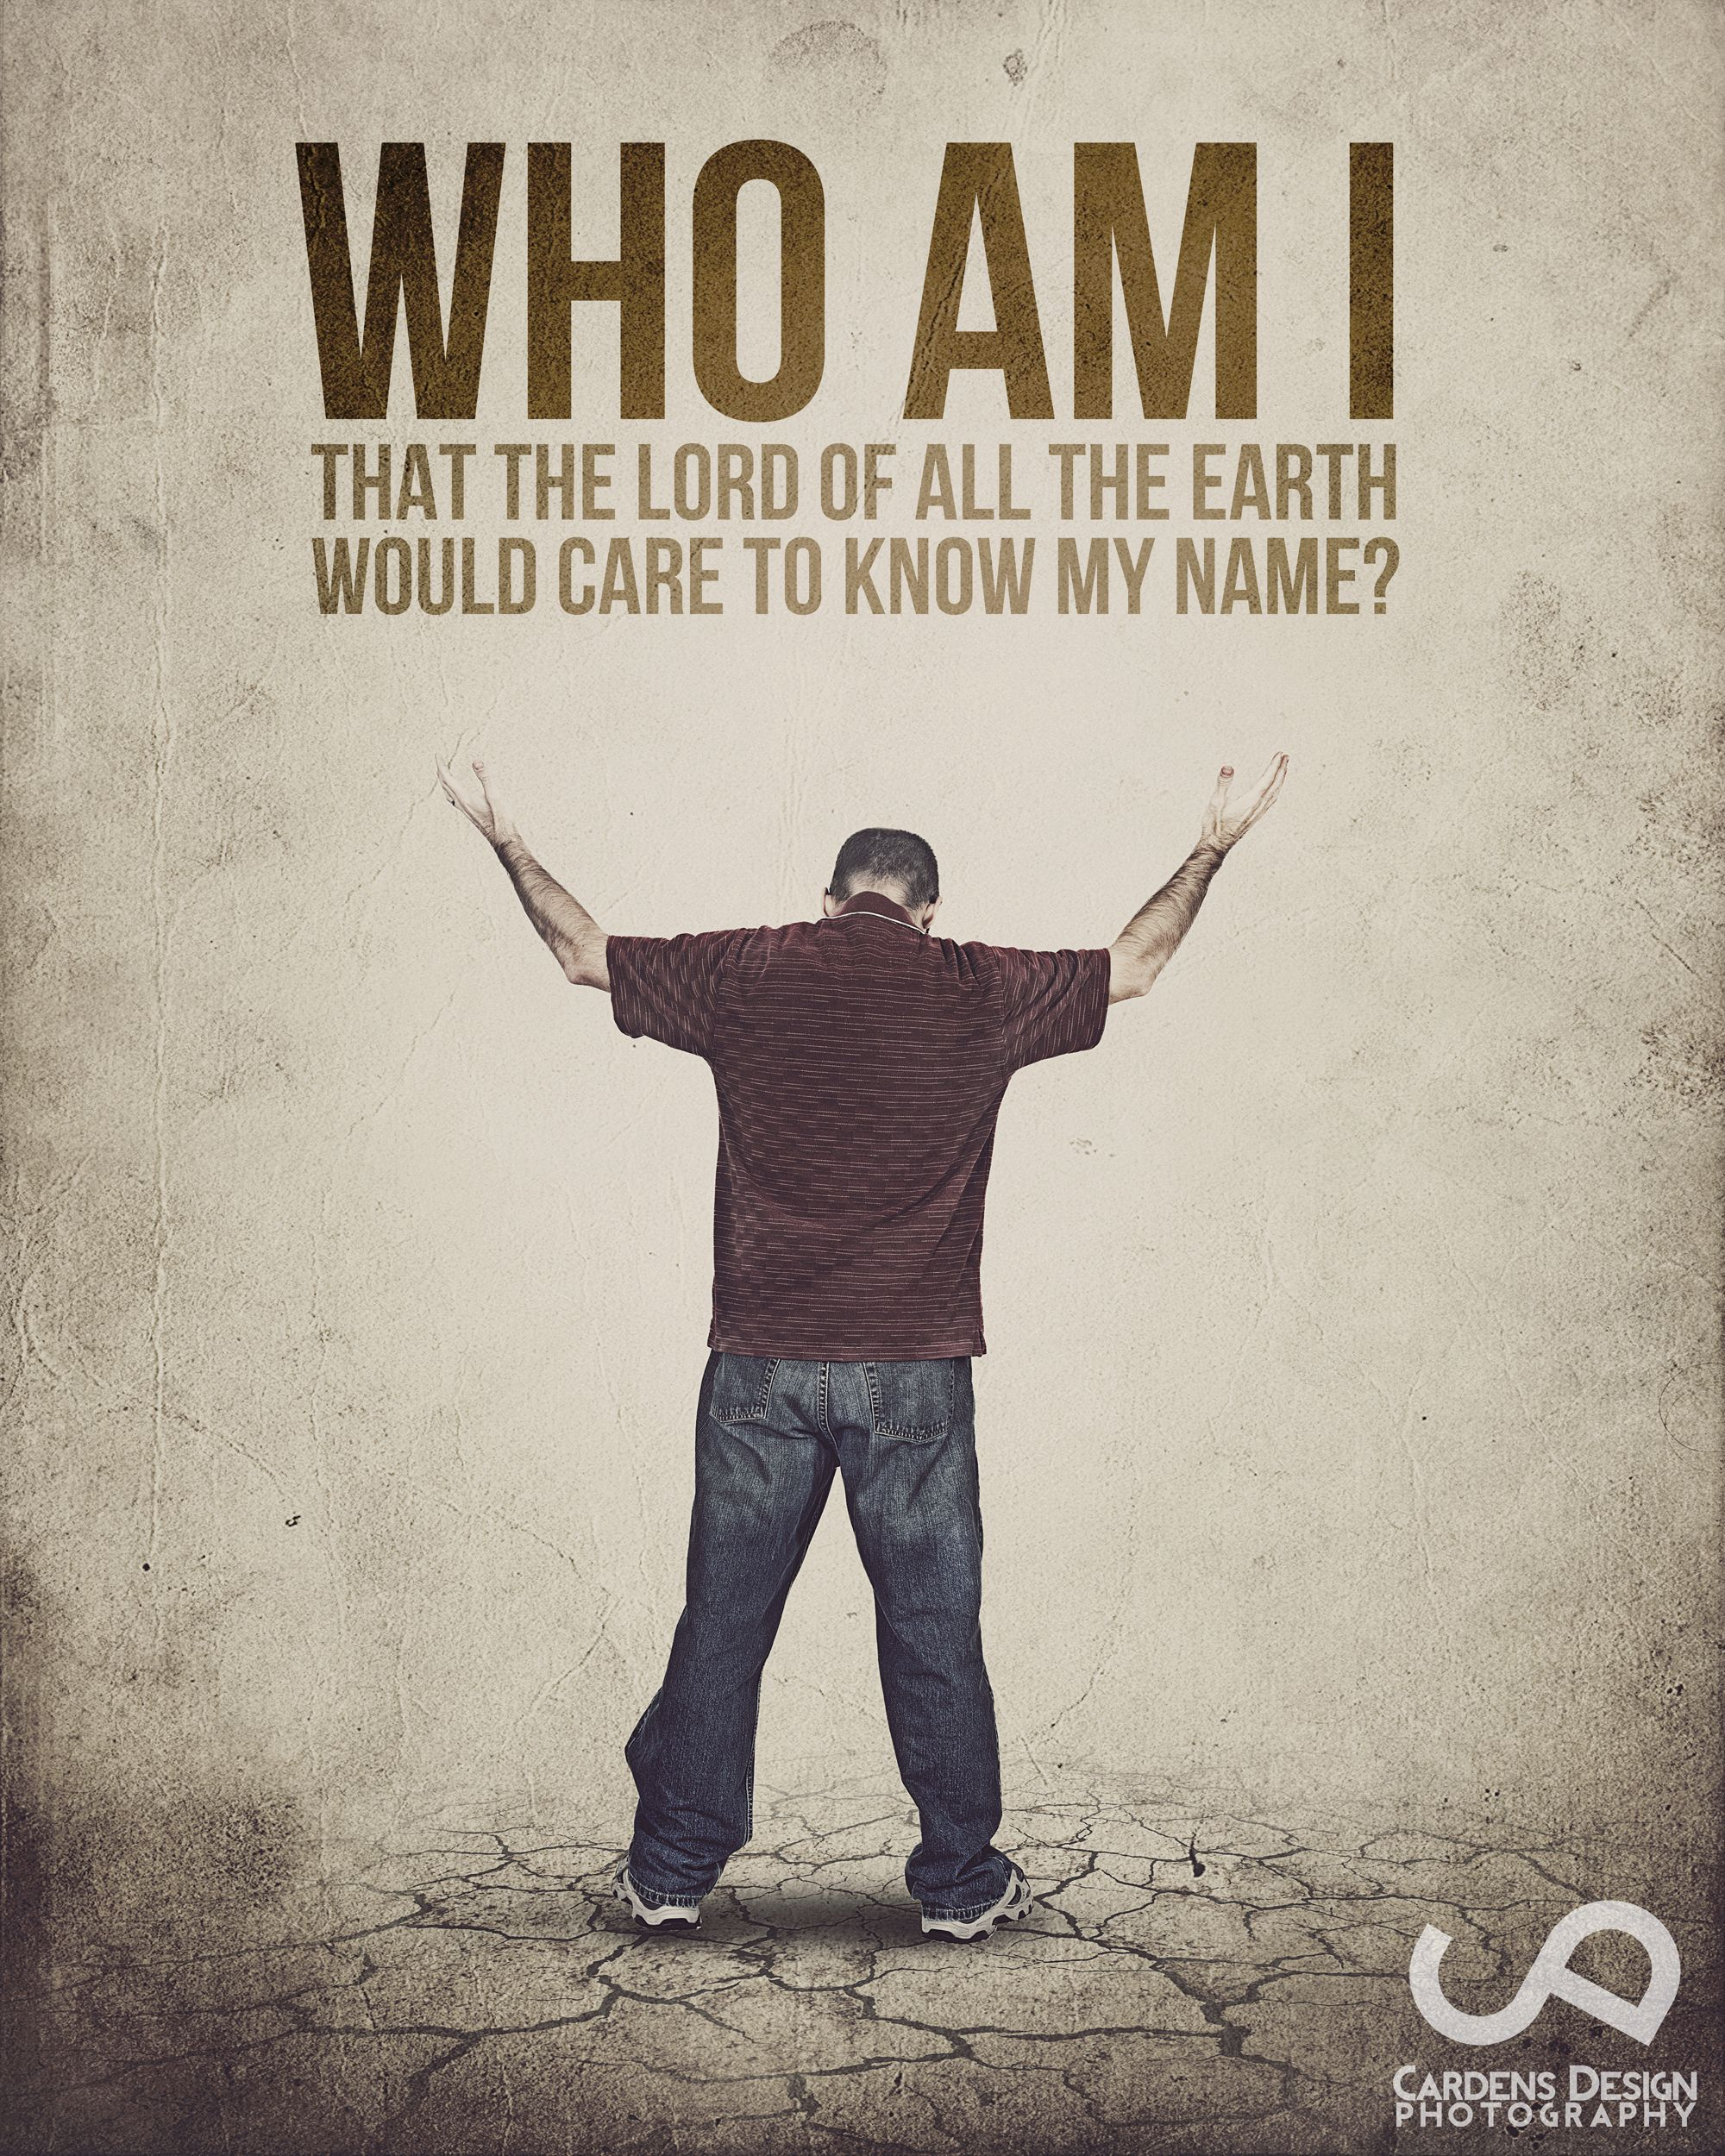 Who am I? That the Lord of all the earth would care to